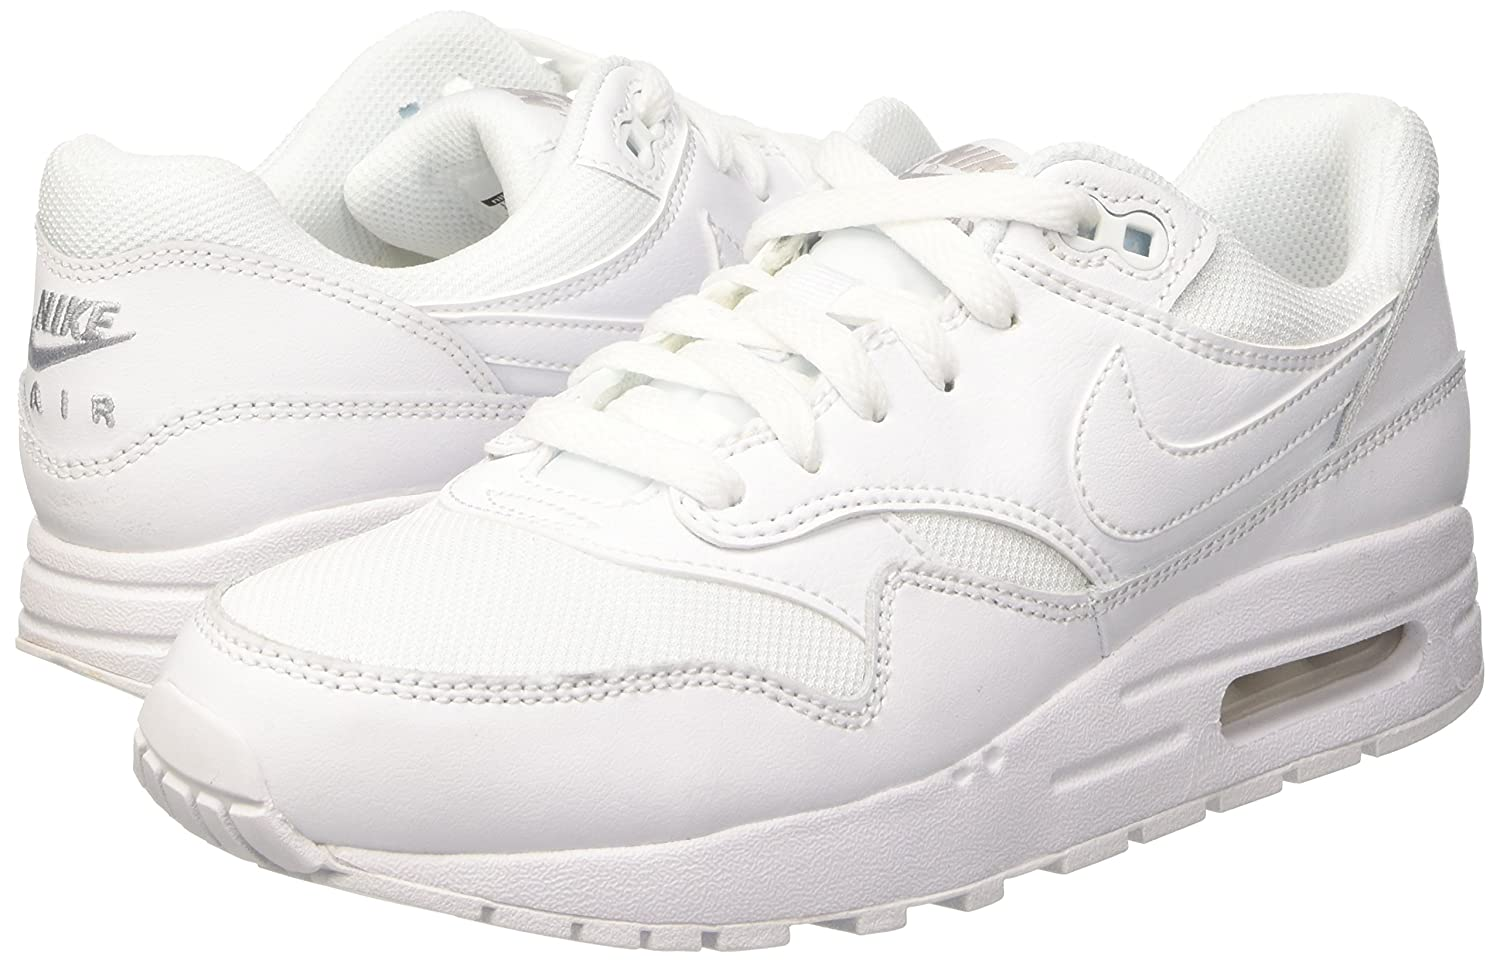 mode designer b25e6 3e4b8 NIKE Youths Air Max 1 Leather Trainers